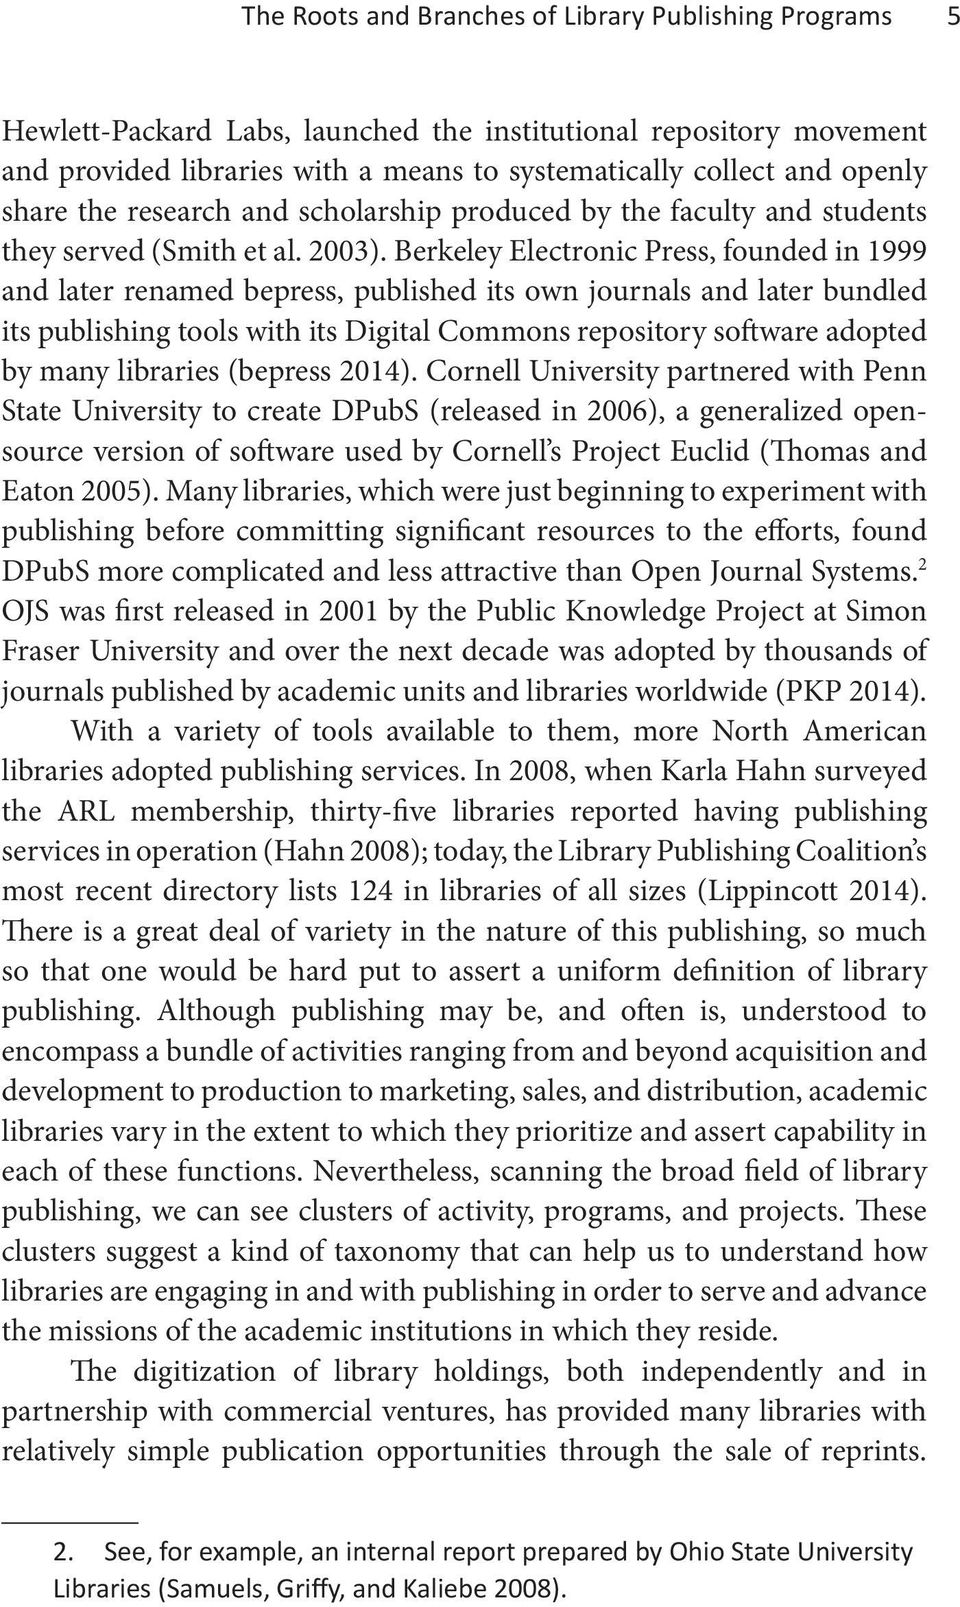 Berkeley Electronic Press, founded in 1999 and later renamed bepress, published its own journals and later bundled its publishing tools with its Digital Commons repository software adopted by many